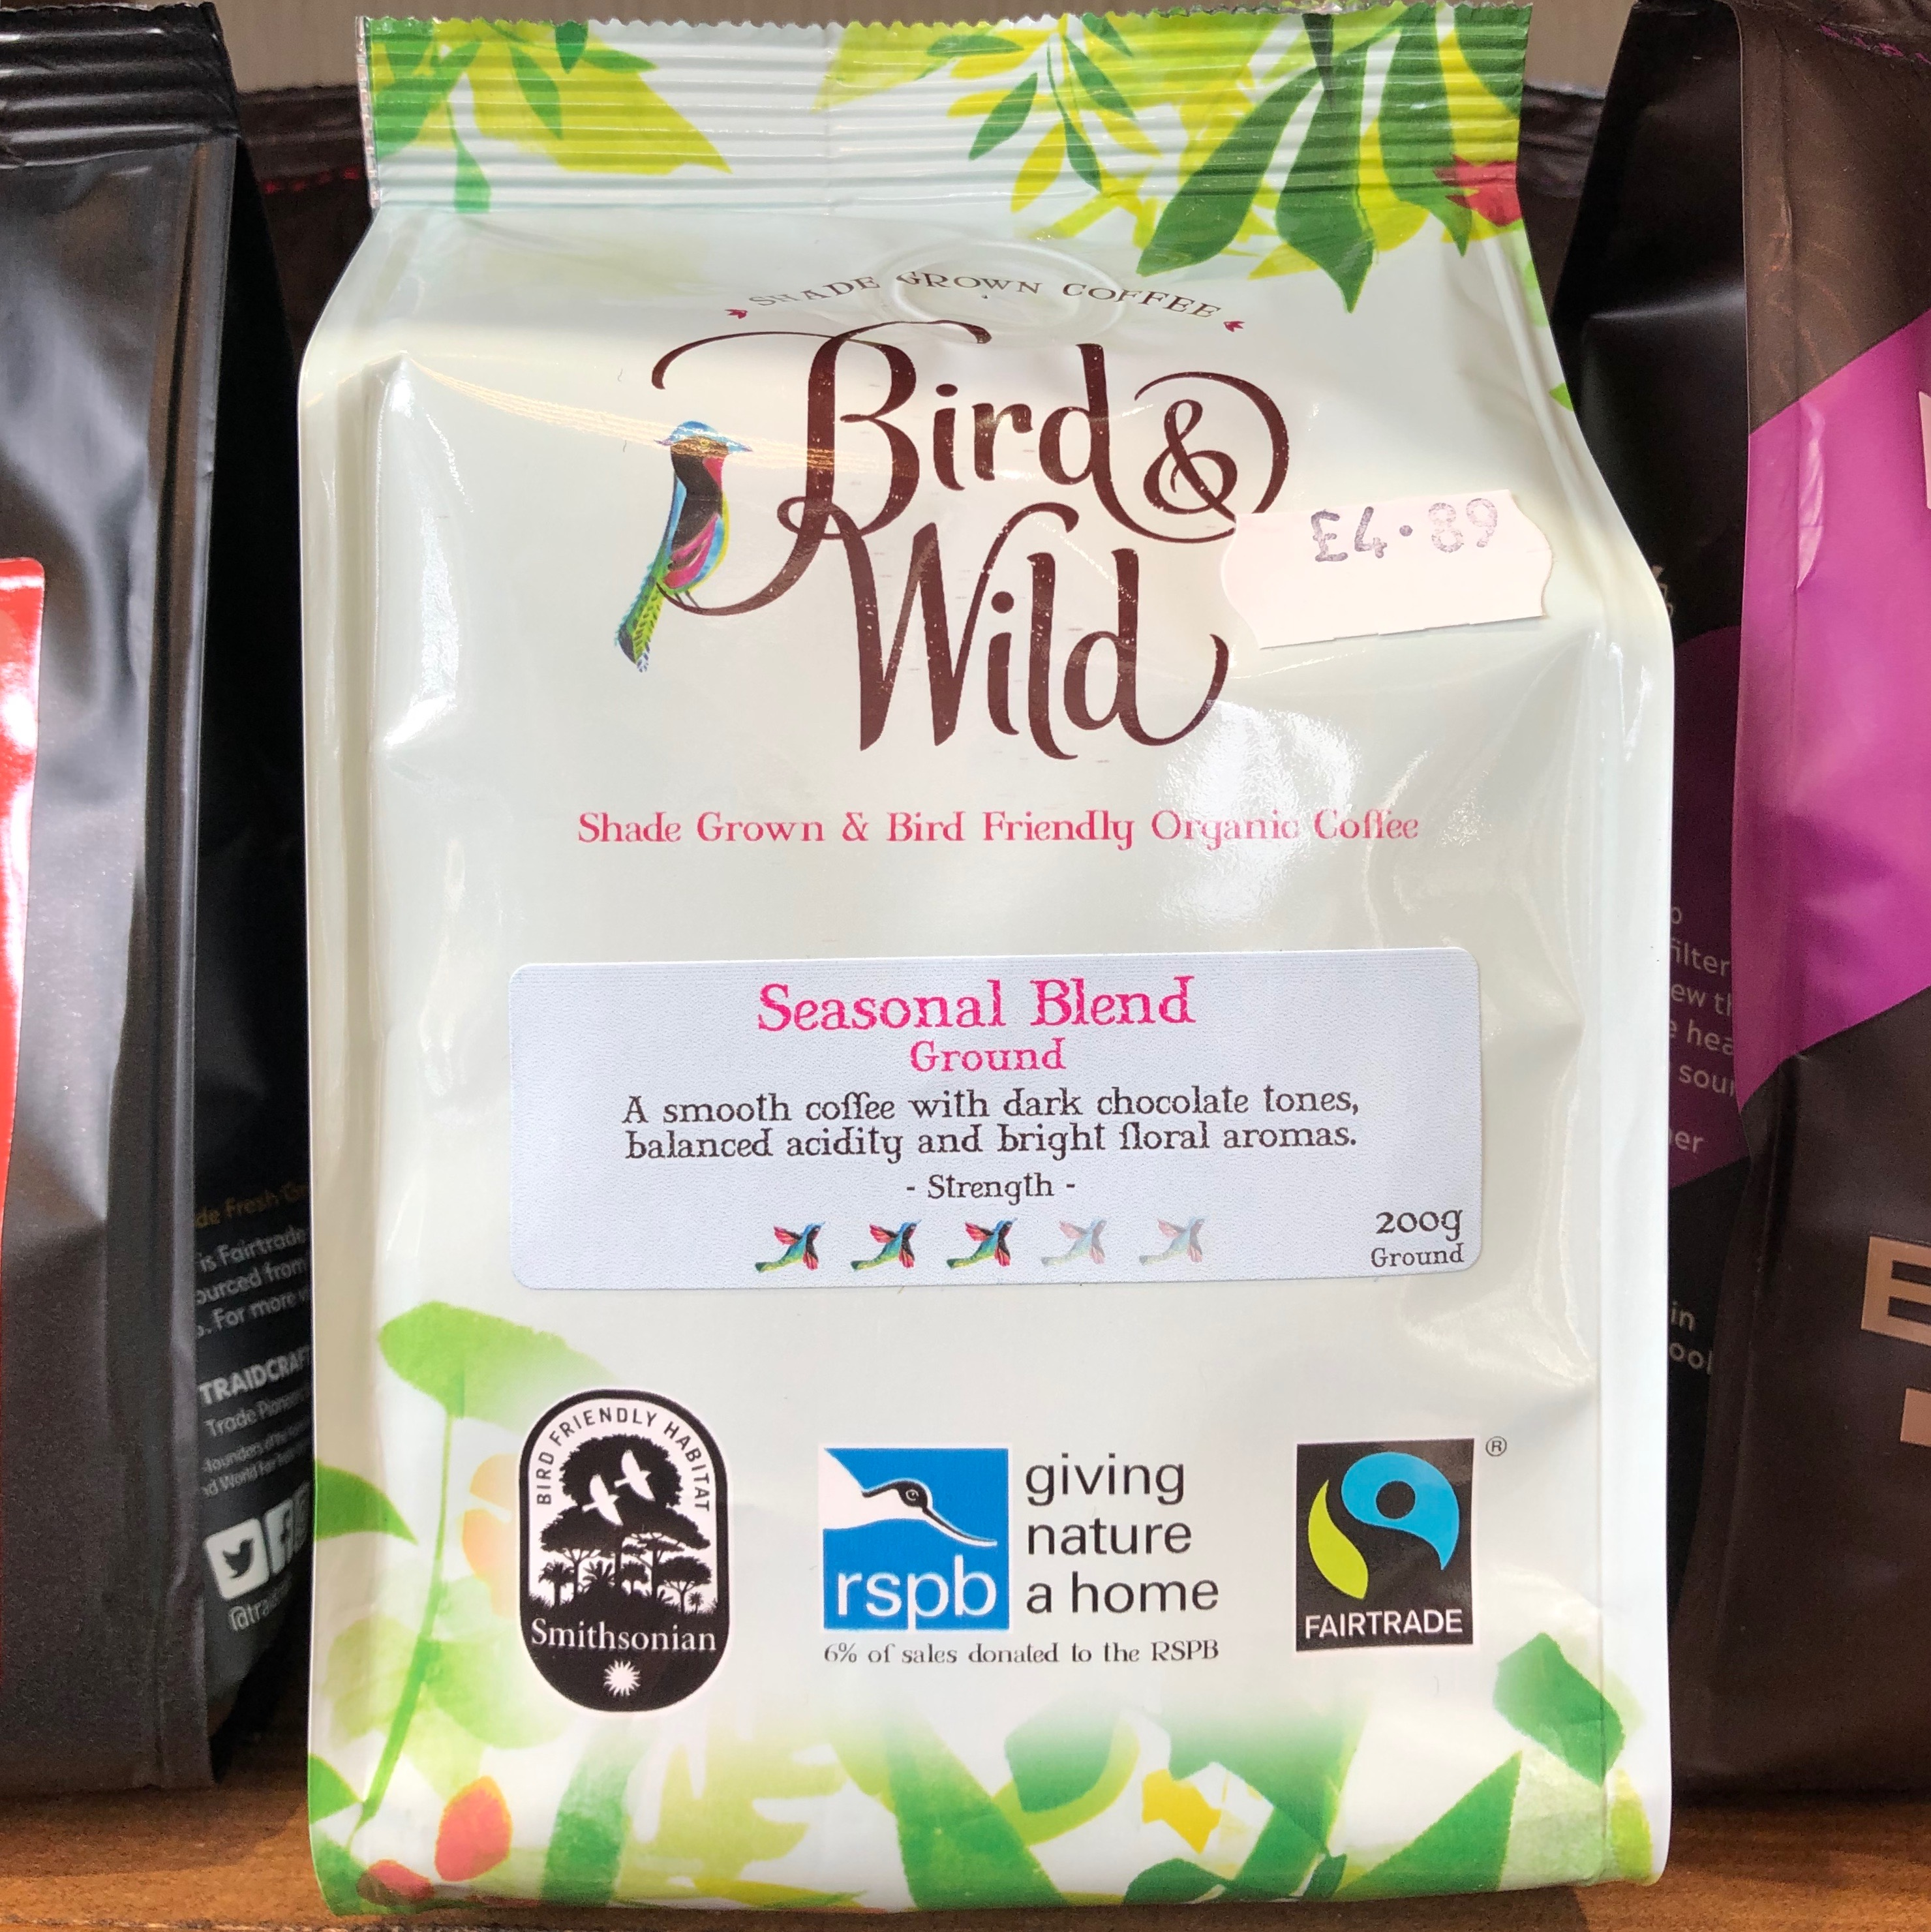 Bird & Wild bag of coffee